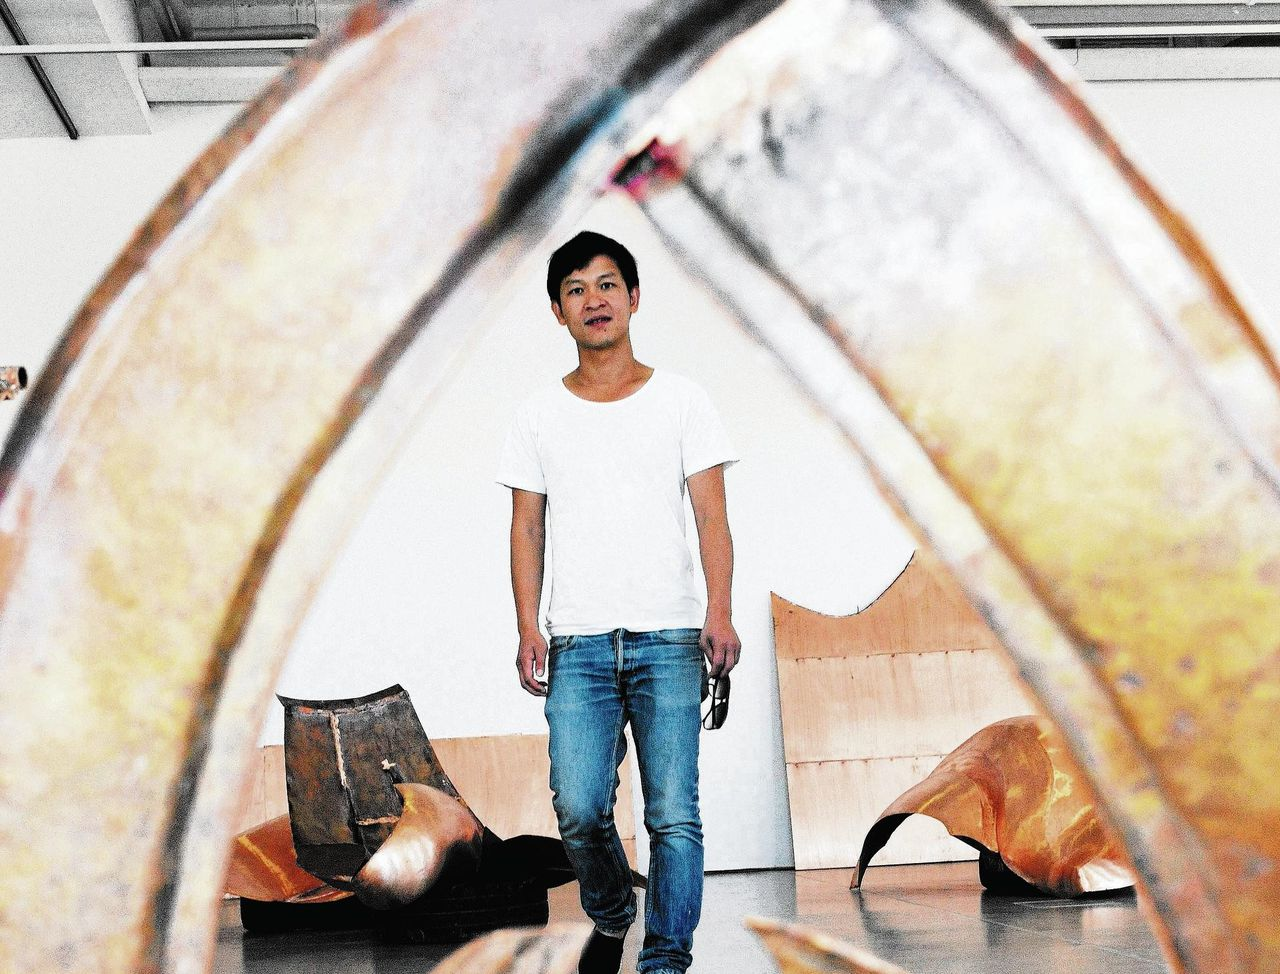 De Deens-Vietnamese kunstenaar Danh Vo en zijn installatie 'We the people' in Kassel in 2011.